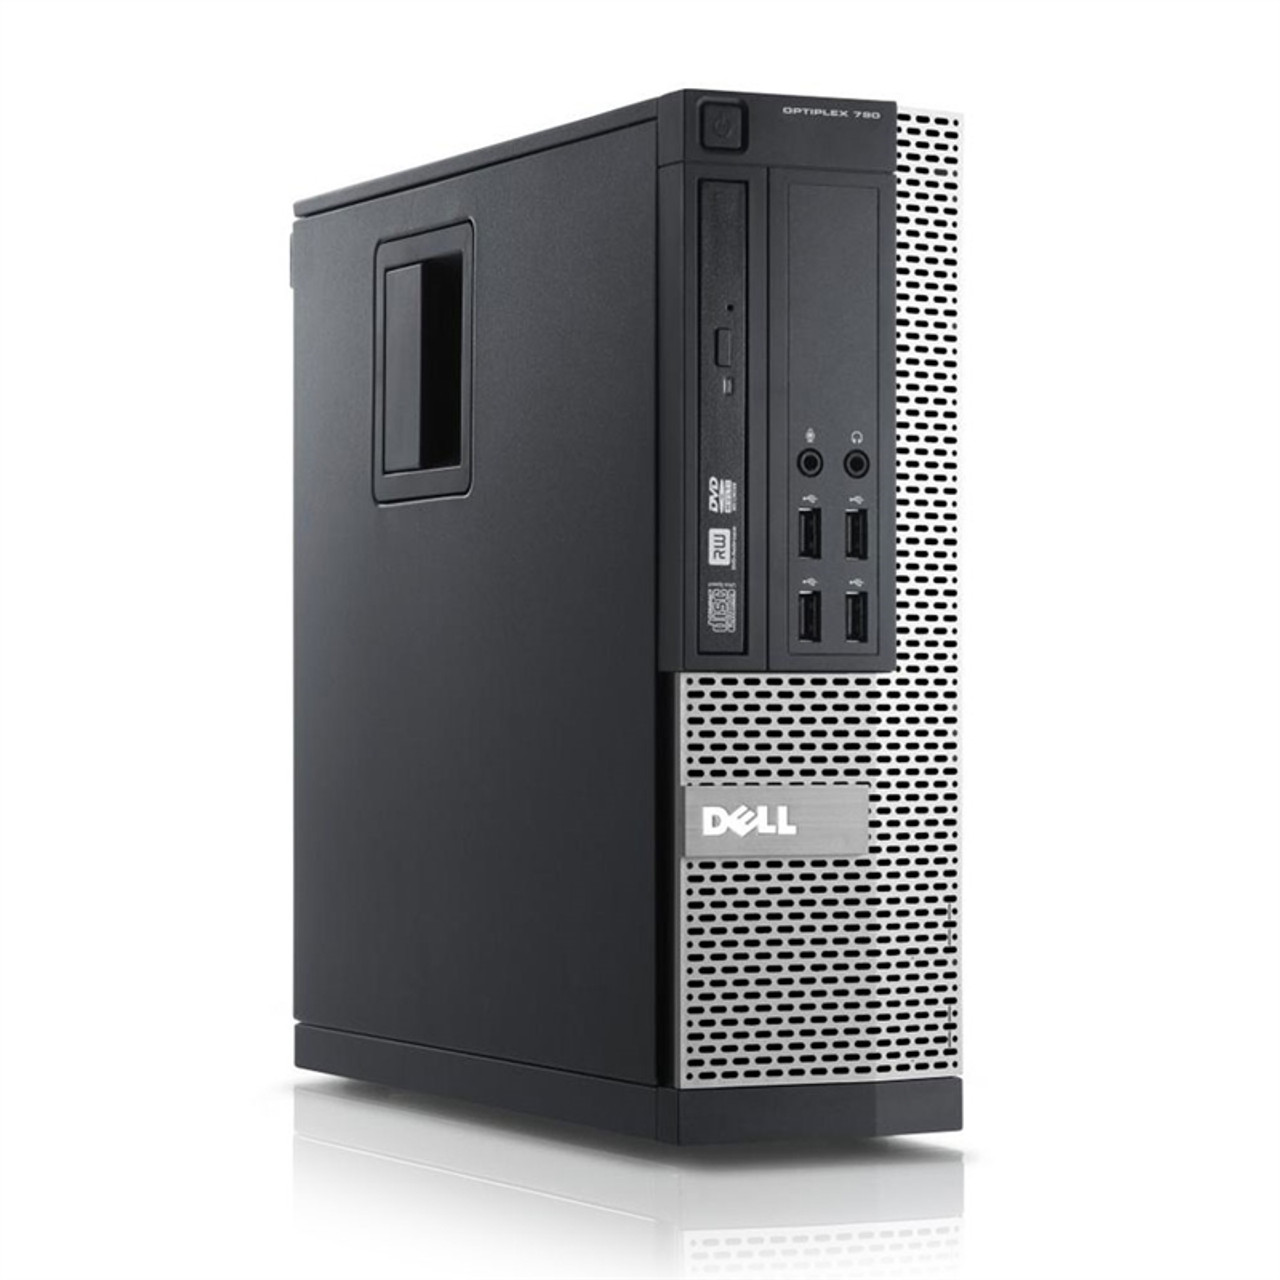 Dell Optiplex 790 SFF Core i3 3.1GHz, 4GB Ram, 250GB HDD, DVD-RW, Windows 10 Pro 64 Desktop Computer